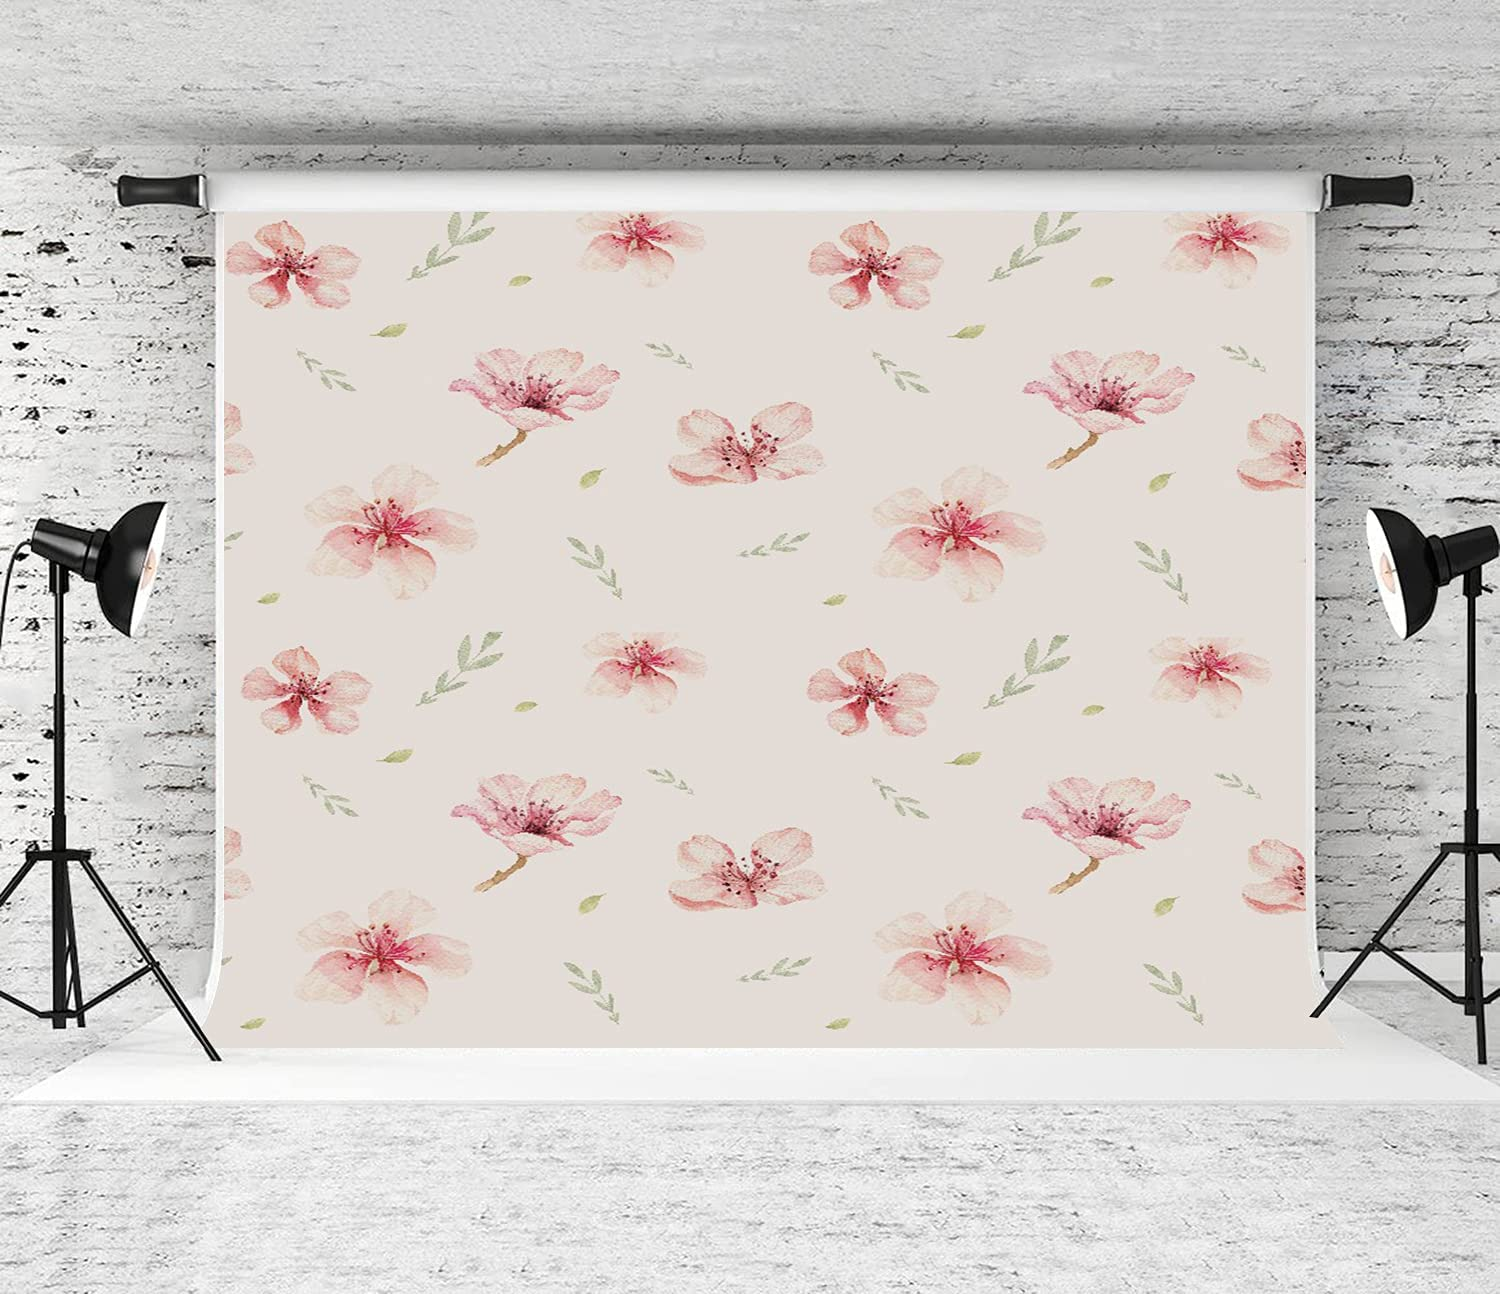 SUDISSKM 10x8FT Photography Background Cherry Genuine Free Shipping B Flowers Blossom New sales